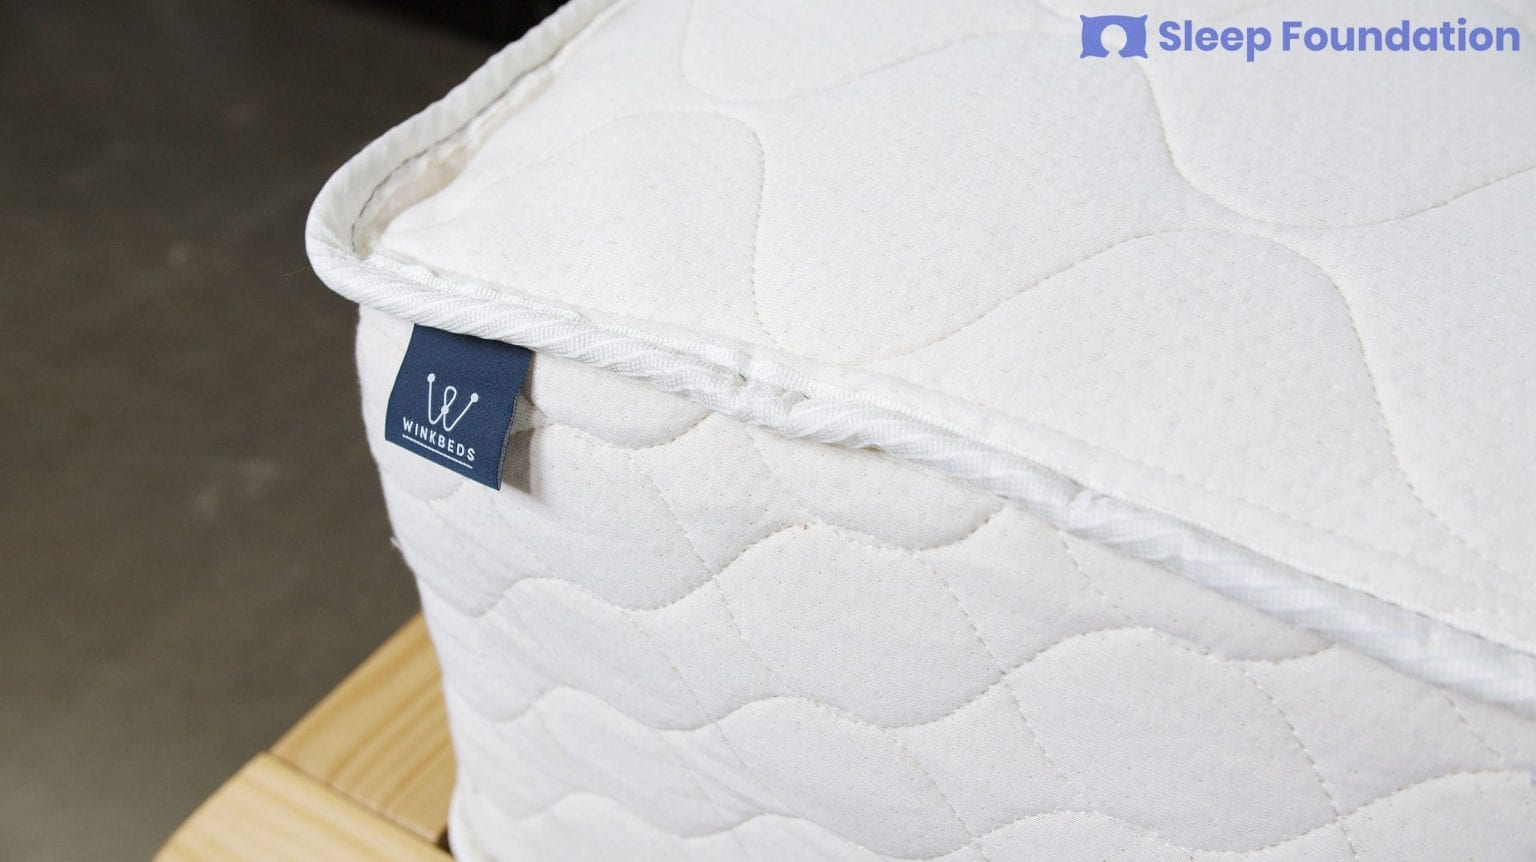 Winkbeds EcoCloud Mattress